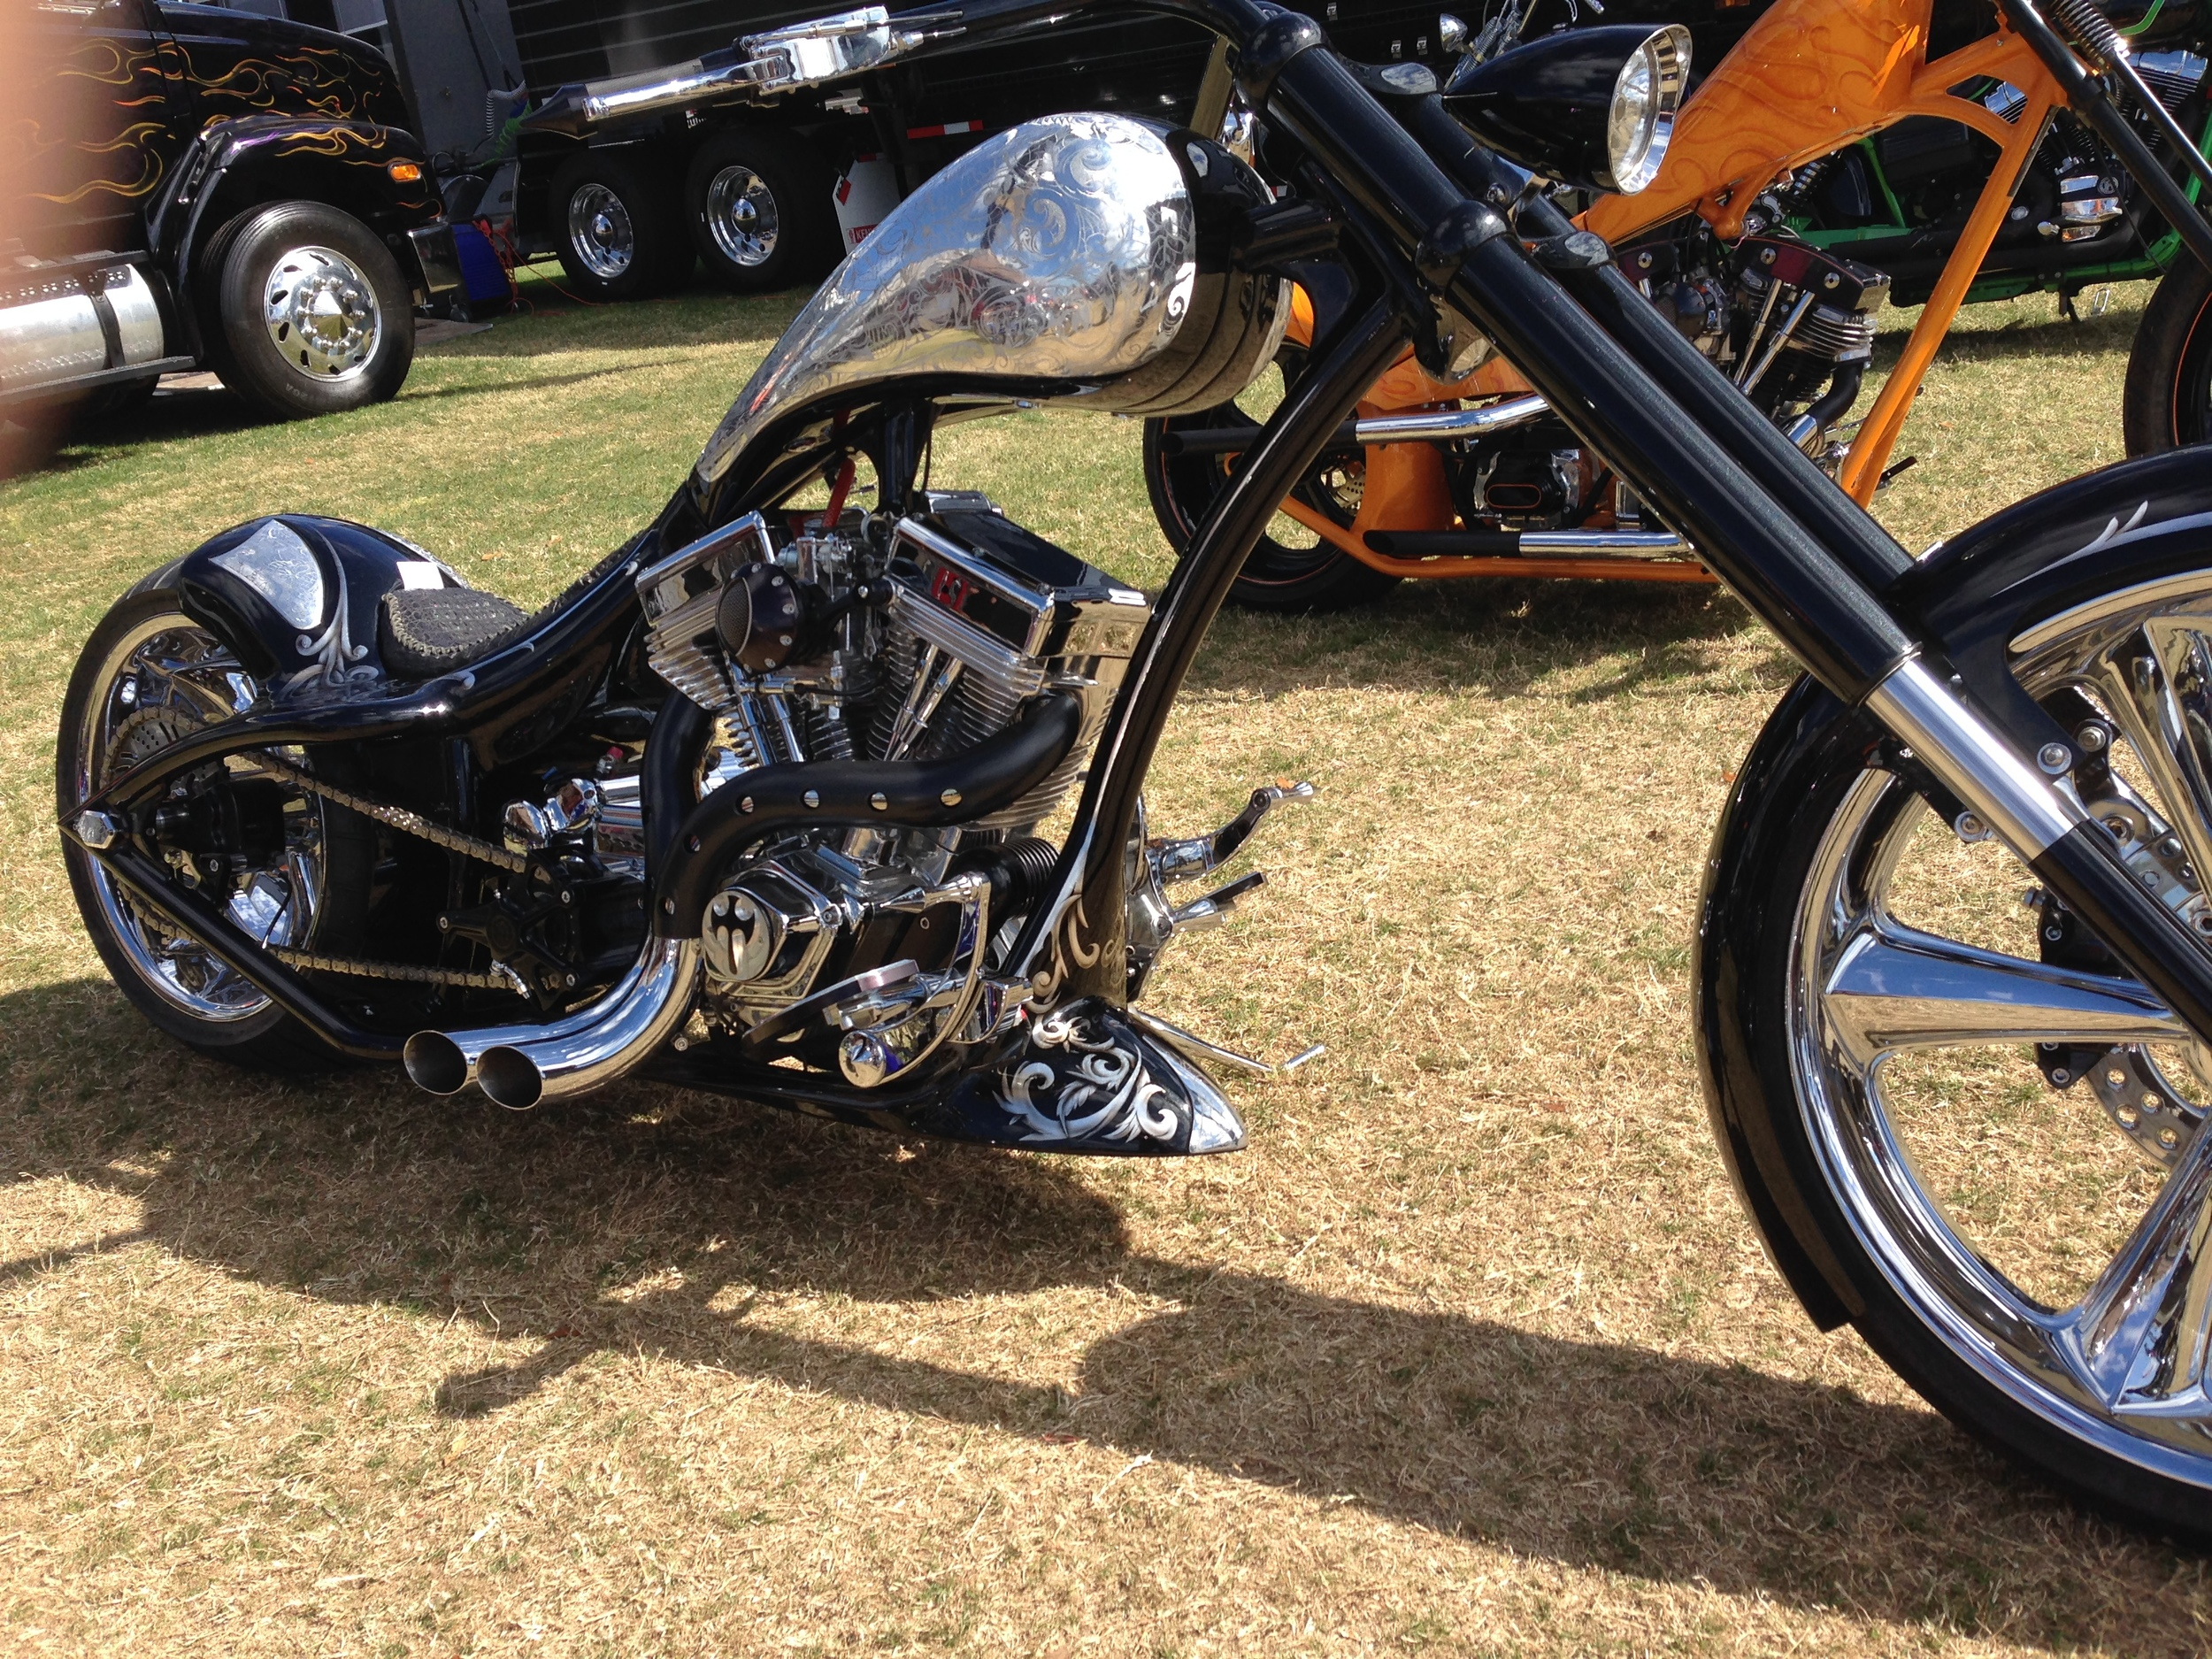 Black Rigid Chopper w/ Polished Etched Gas Tank